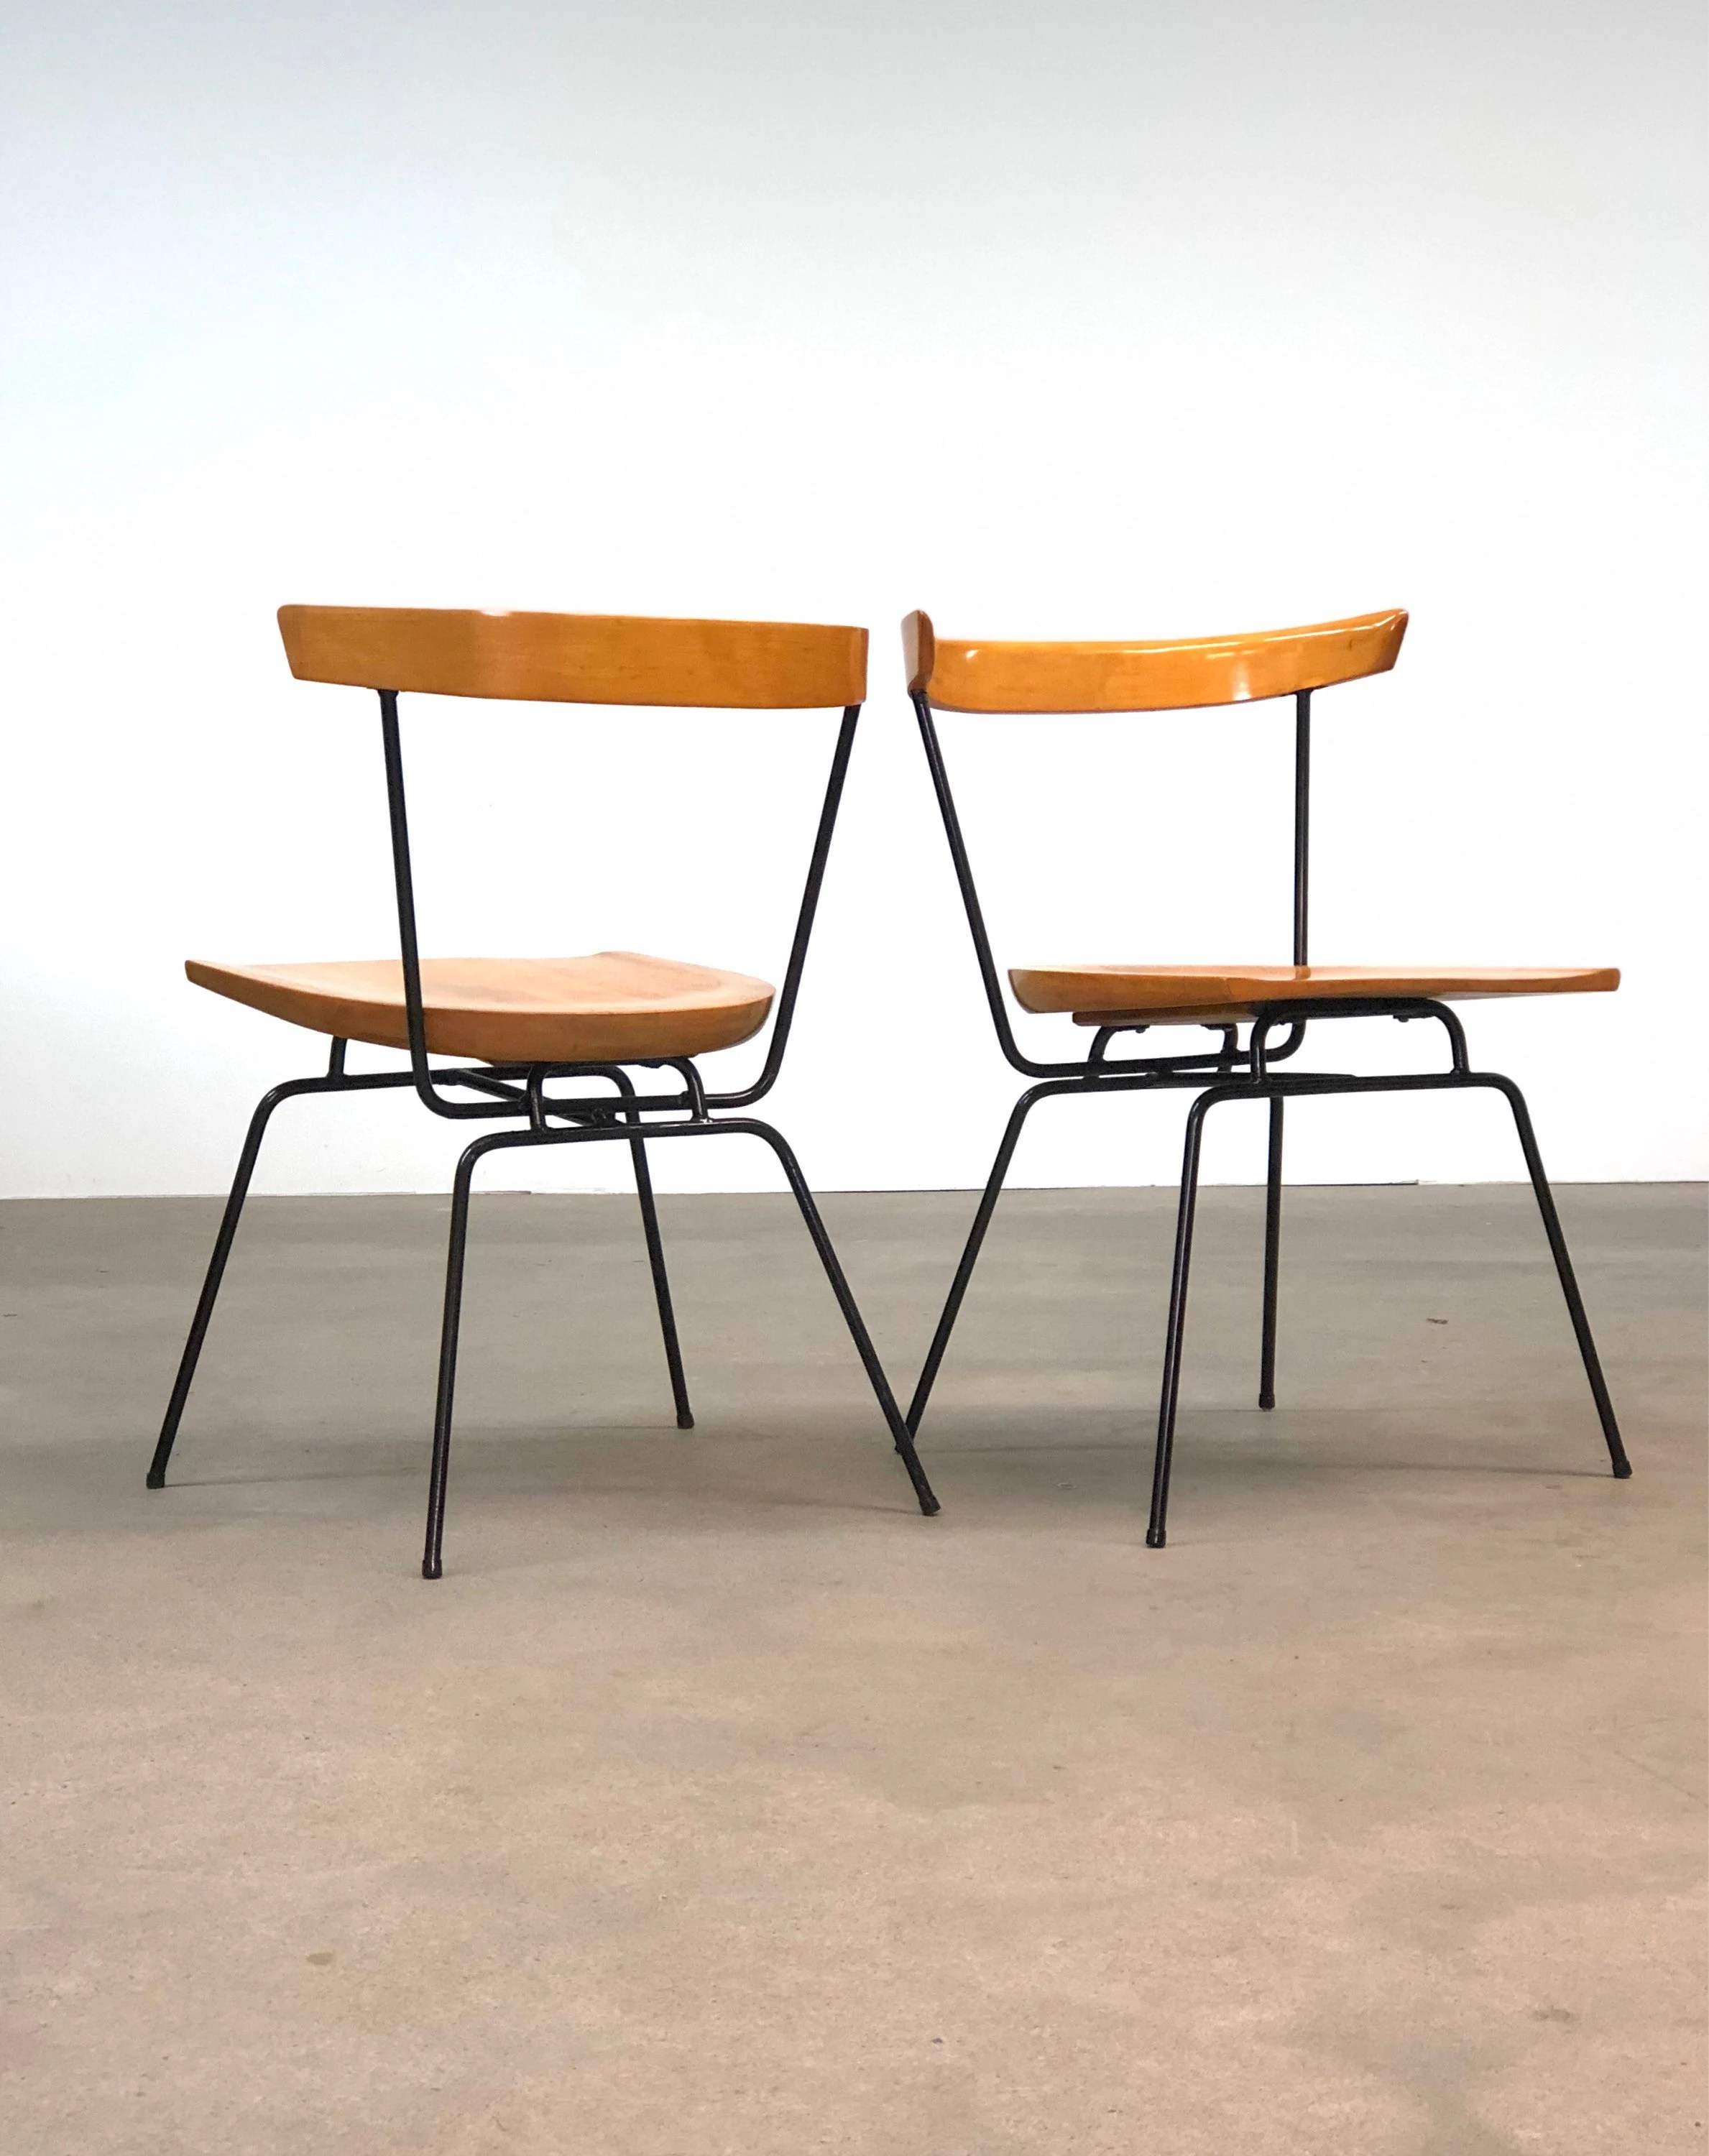 Paul Mccobb Chairs Paul Mccobb Iron And Birch 1535 Chairs Mid Century Iron